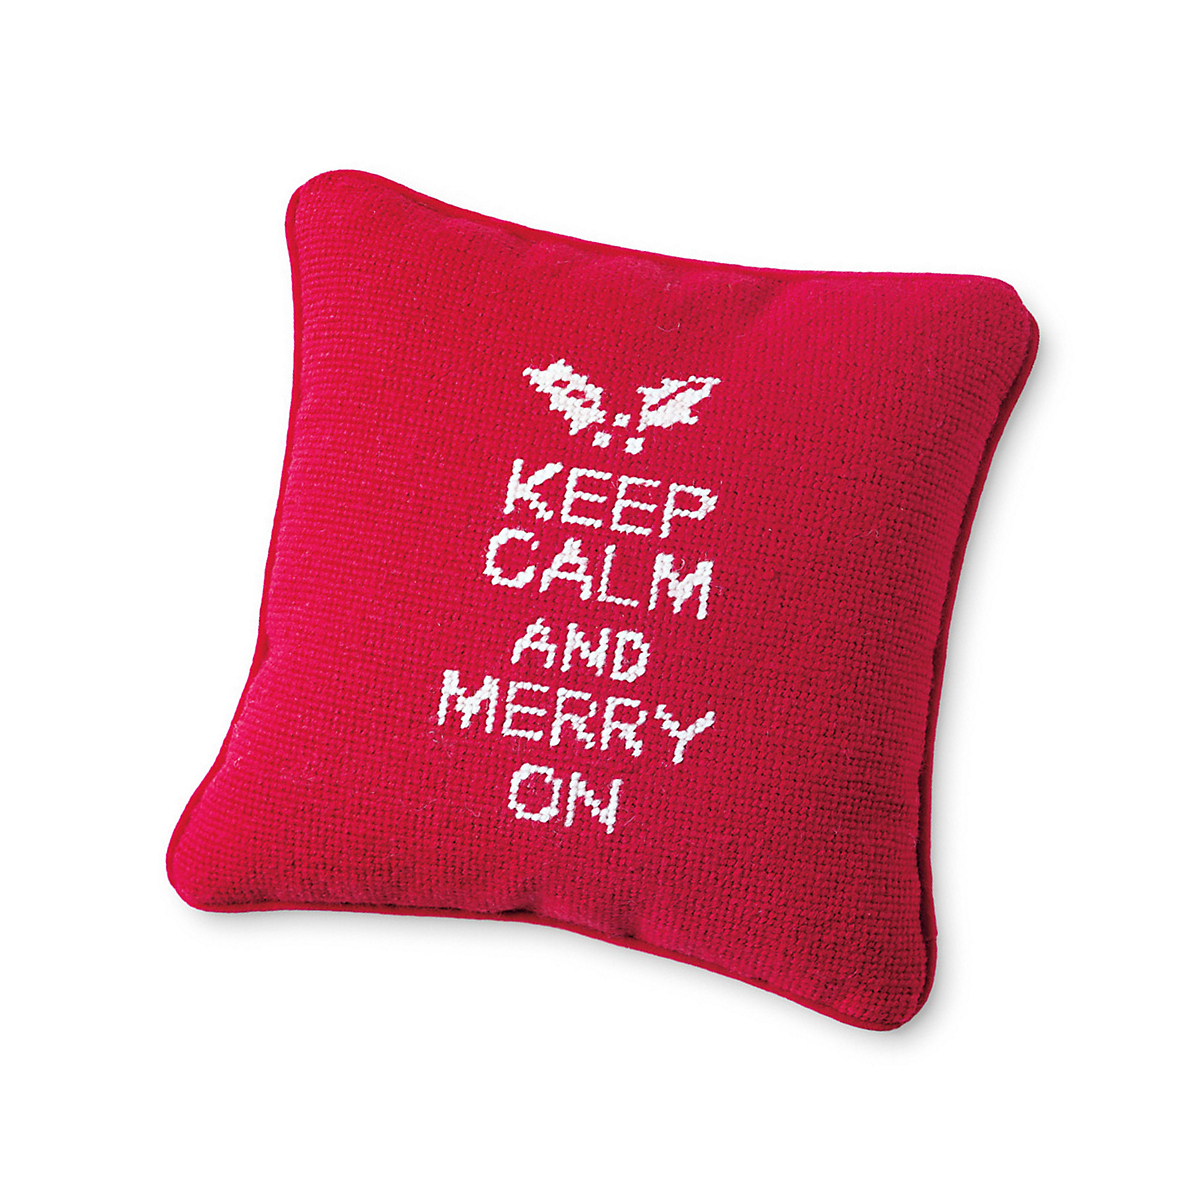 'Keep Calm & ...' Needlepoint Pillow